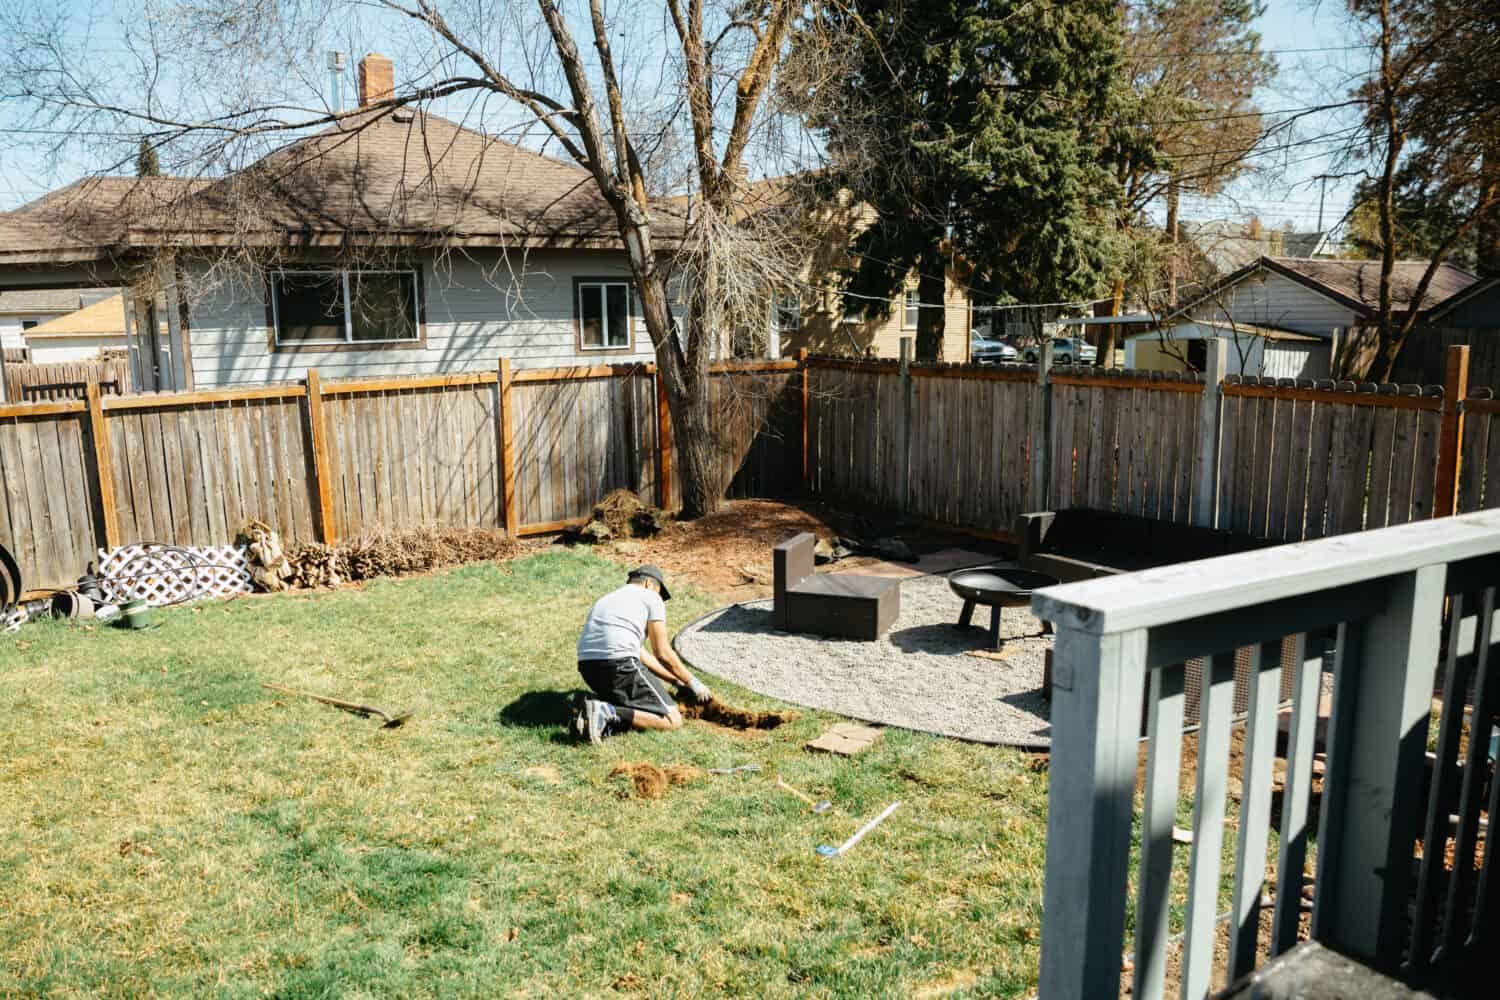 Berty Mandagie removing sod from the backyard fire pit area - TheMandagies.com